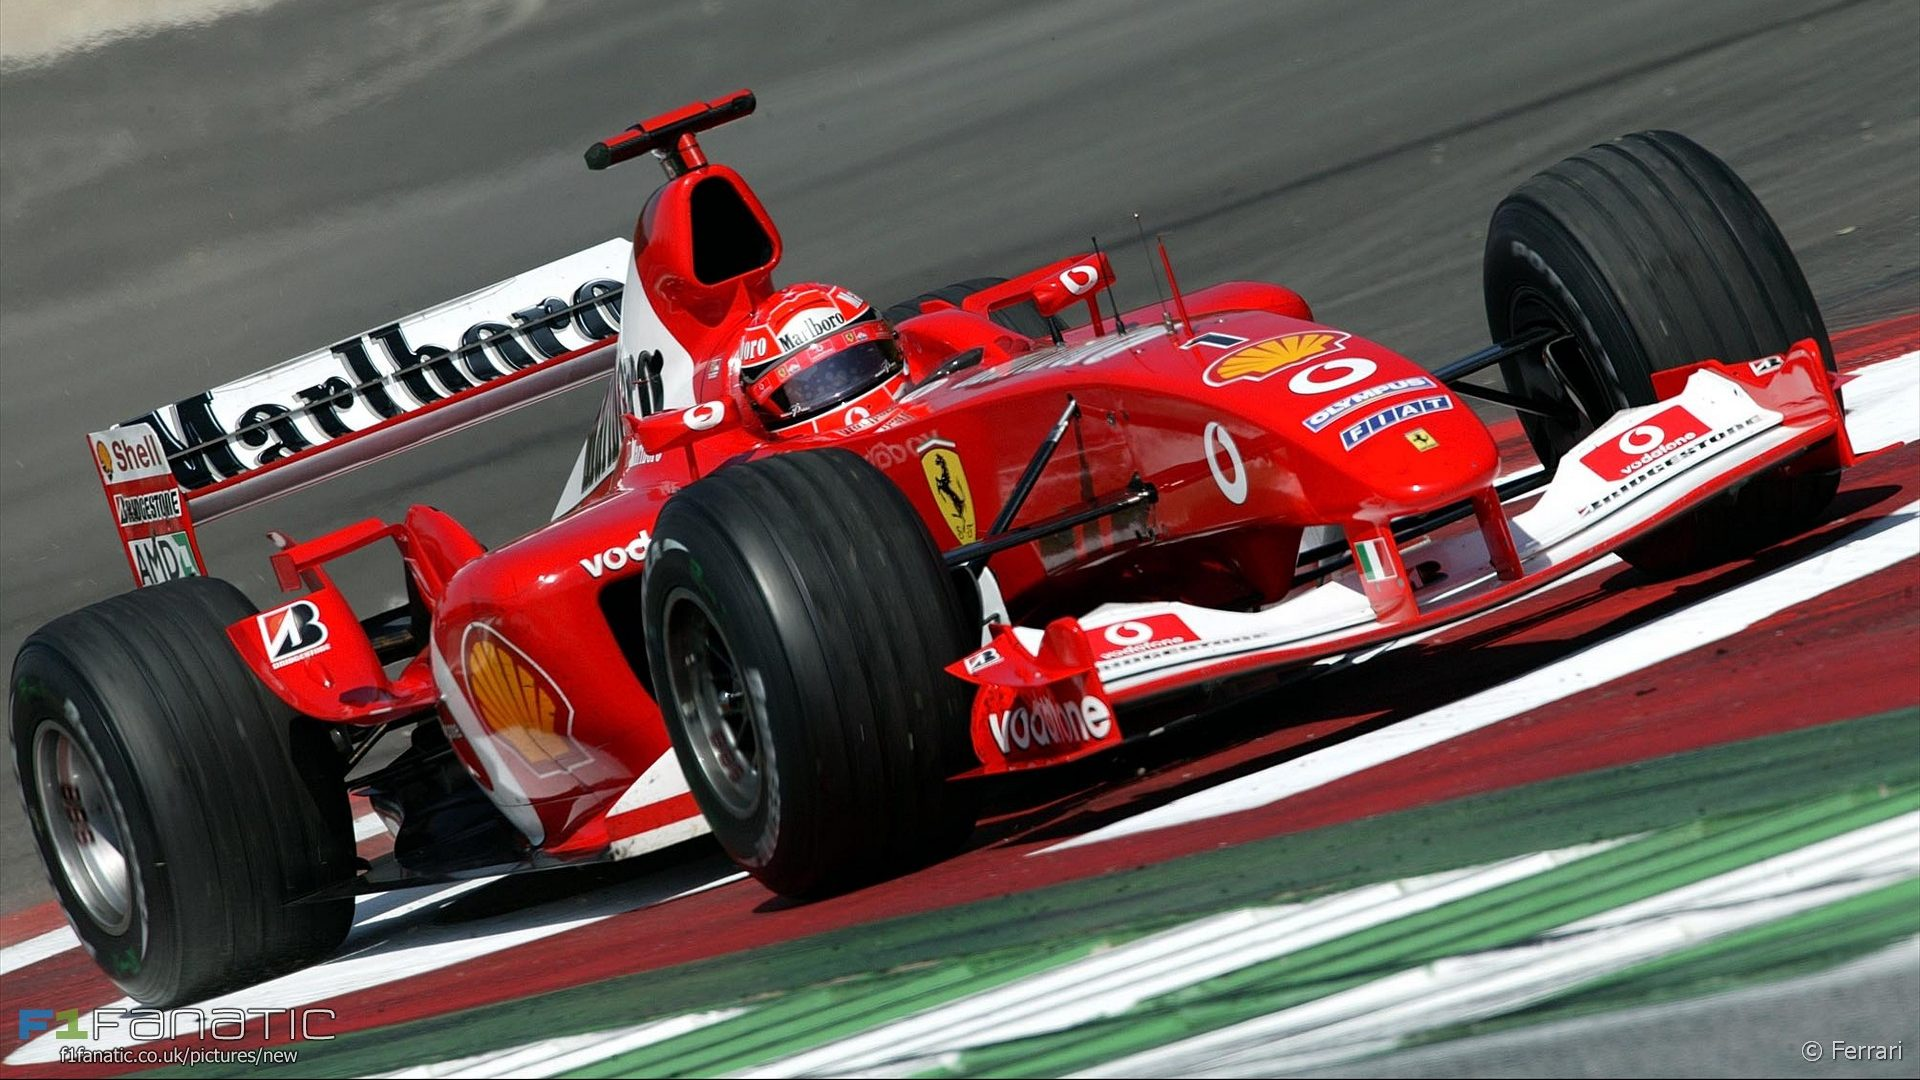 Michael Schumacher, Ferrari, A1-Ring, 2003